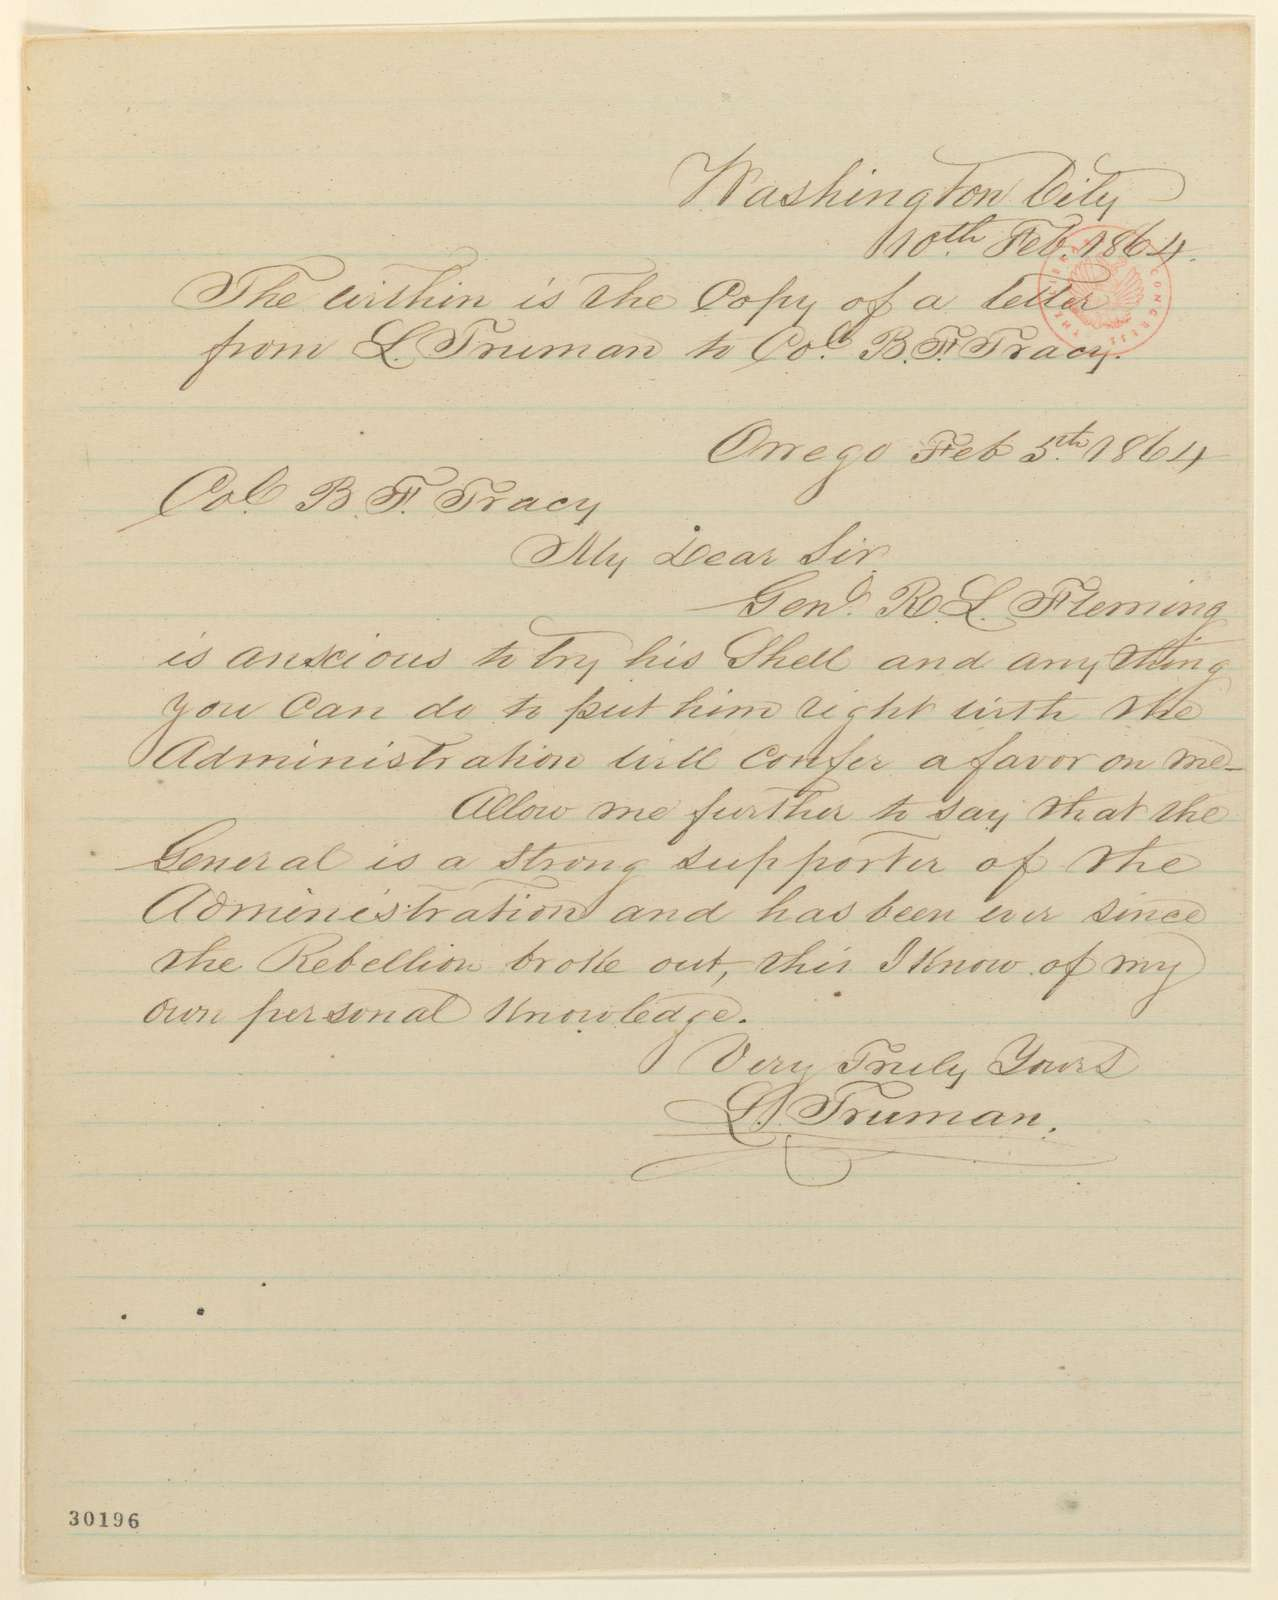 Abraham Lincoln papers: Series 1. General Correspondence. 1833-1916: L. Truman to Benjamin F. Tracy, Friday, February 05, 1864 (Recommendation)